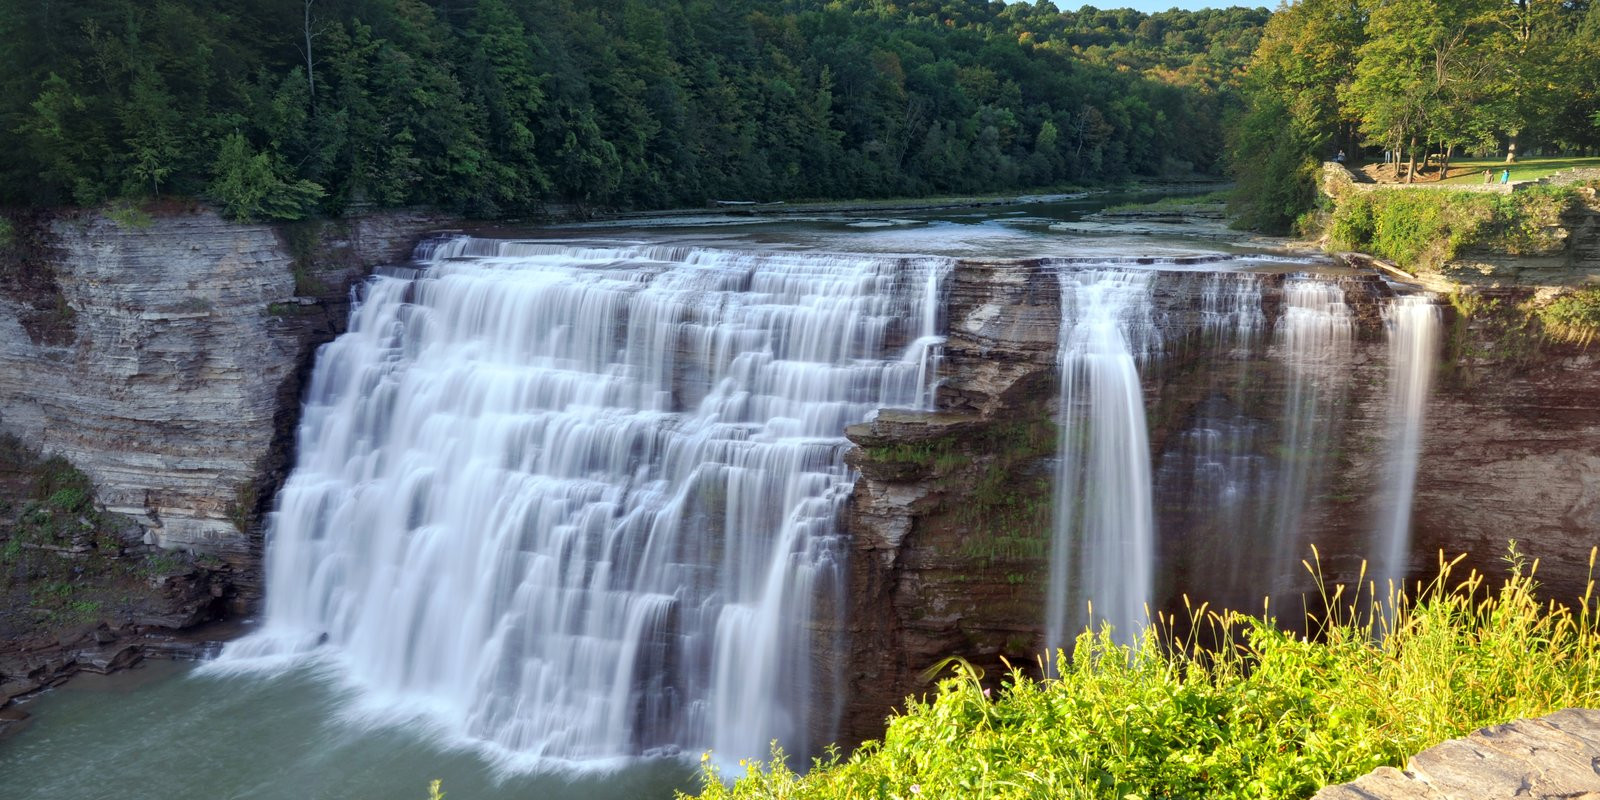 Waterfalls and Gorges of the Finger Lakes